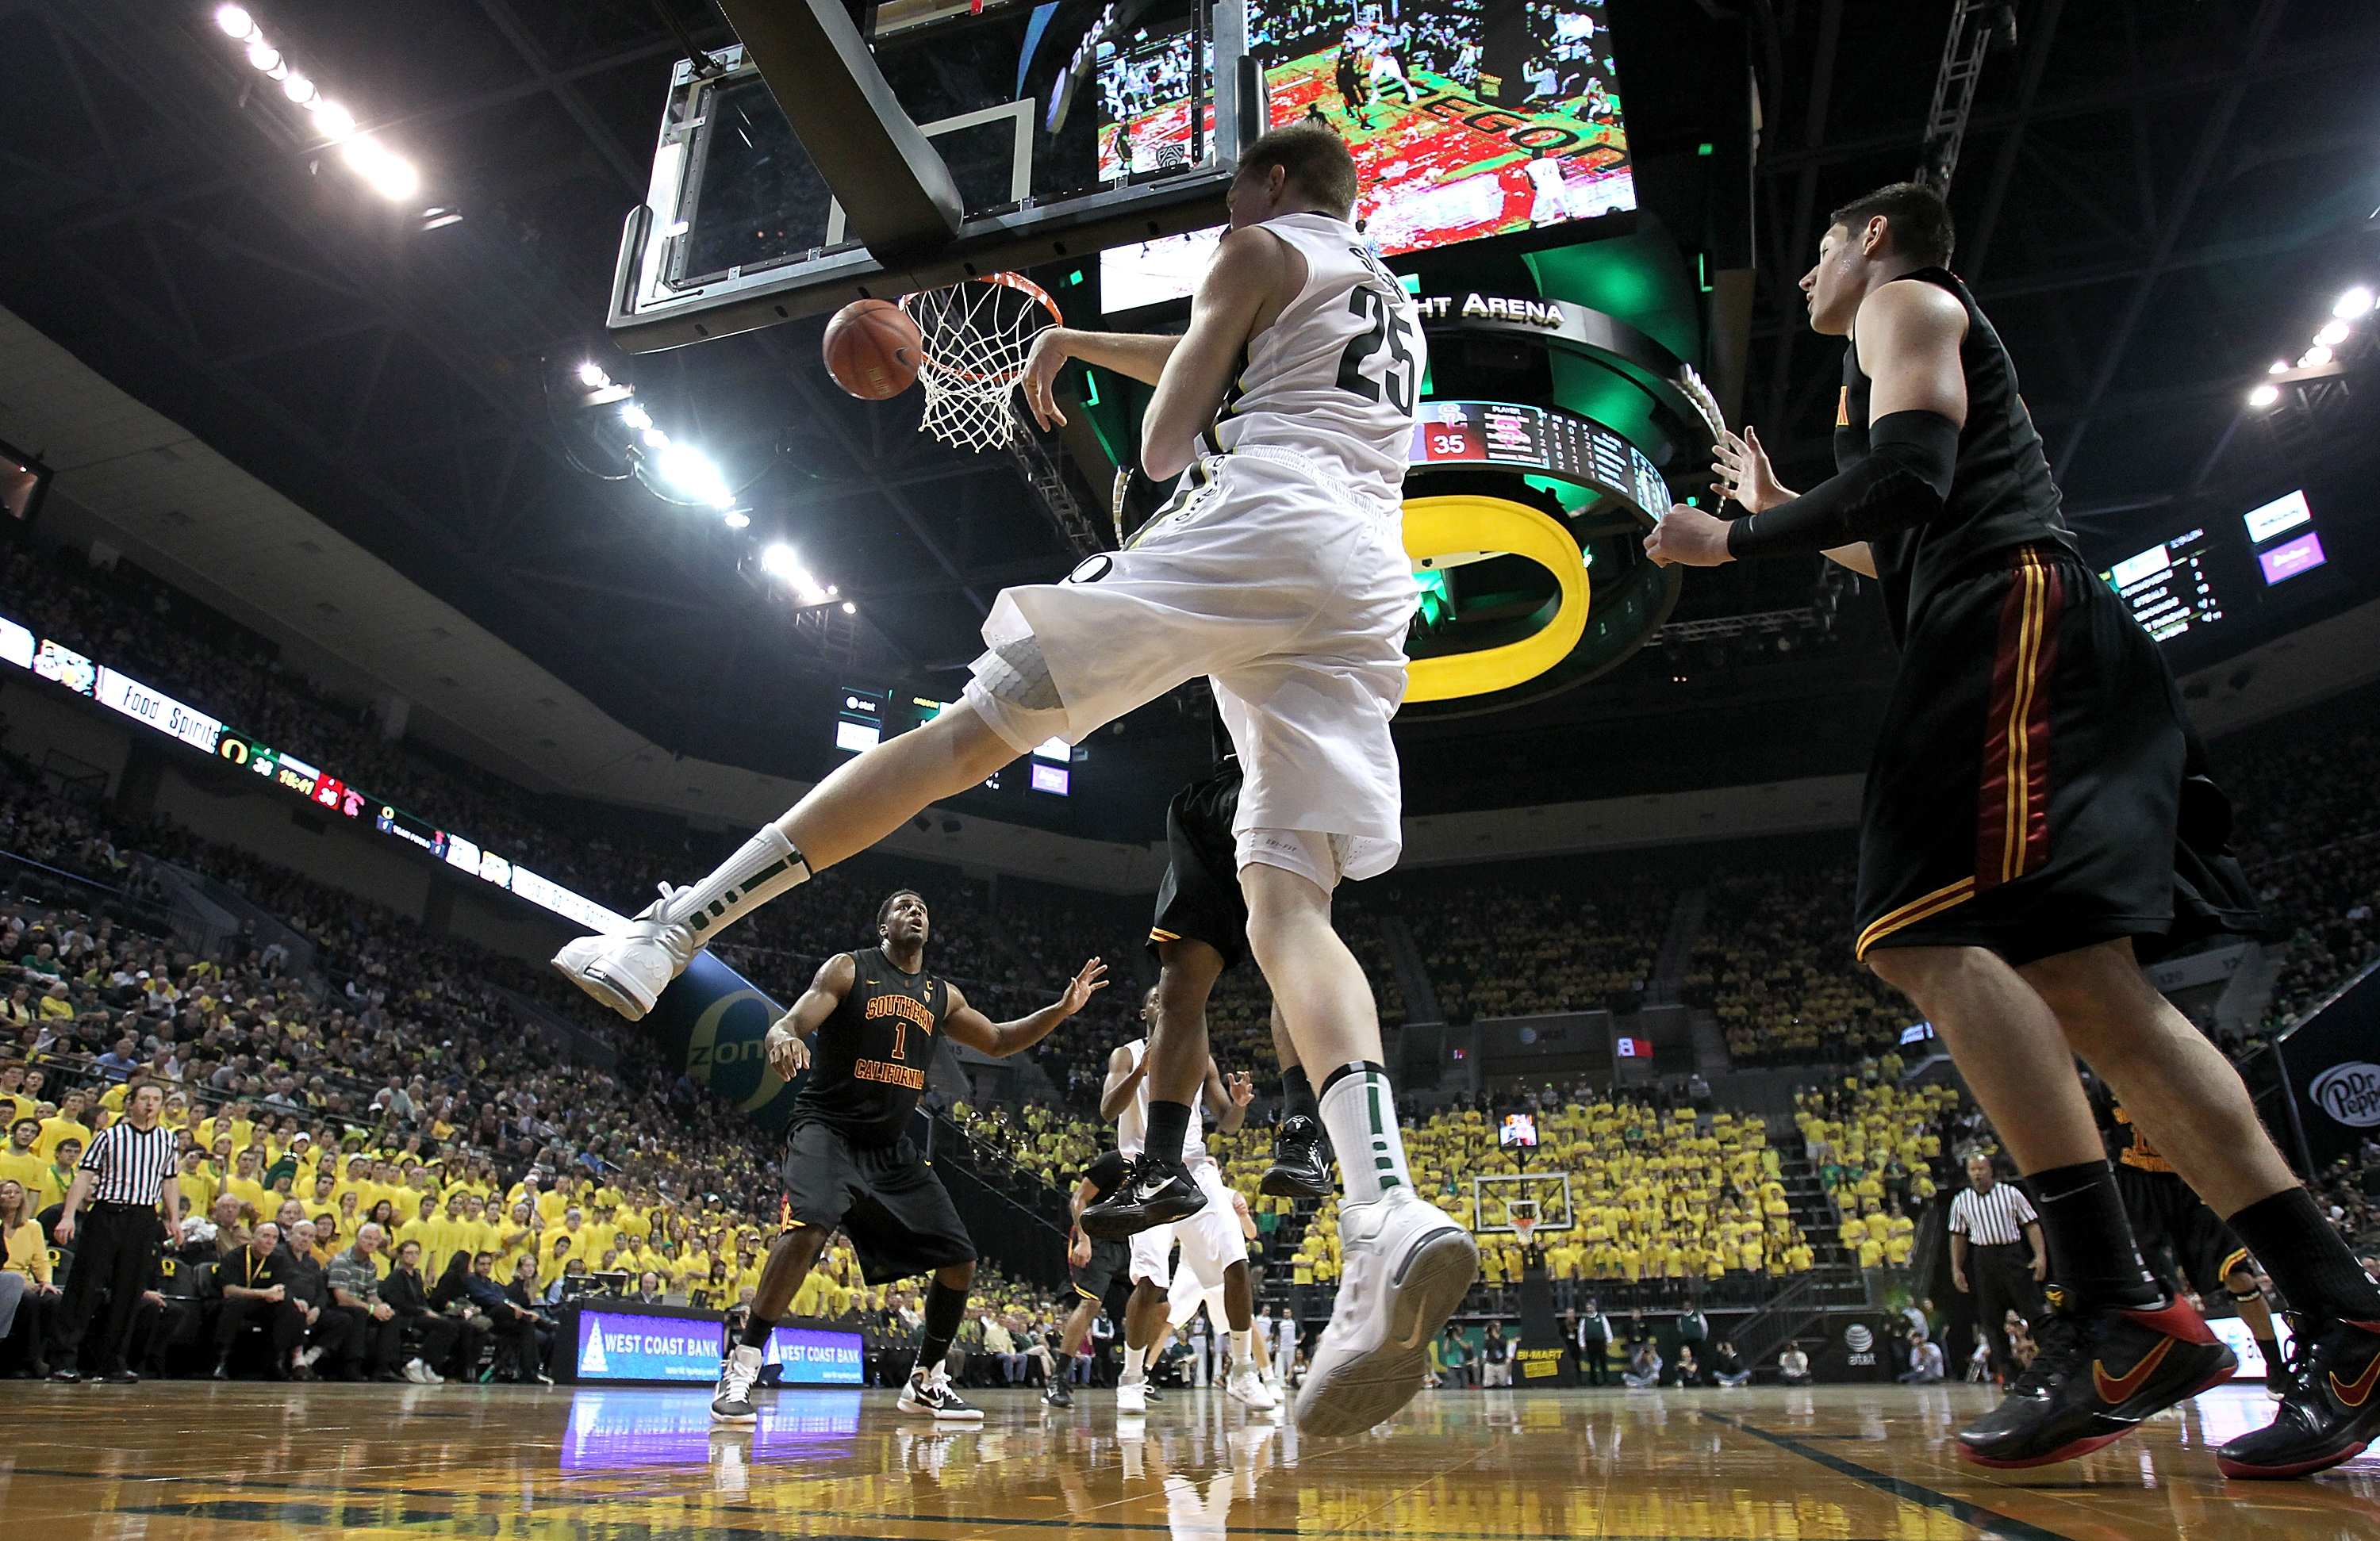 EUGENE, OR - JANUARY 13:  E.J. Singler #24 of the Oregon Ducks passes the ball against the USC Trojans during the grand opening of the Matthew Knight Arena on January 13, 2011 at Matthew Knight Arena in Eugene, Oregon.  (Photo by Jonathan Ferrey/Getty Ima